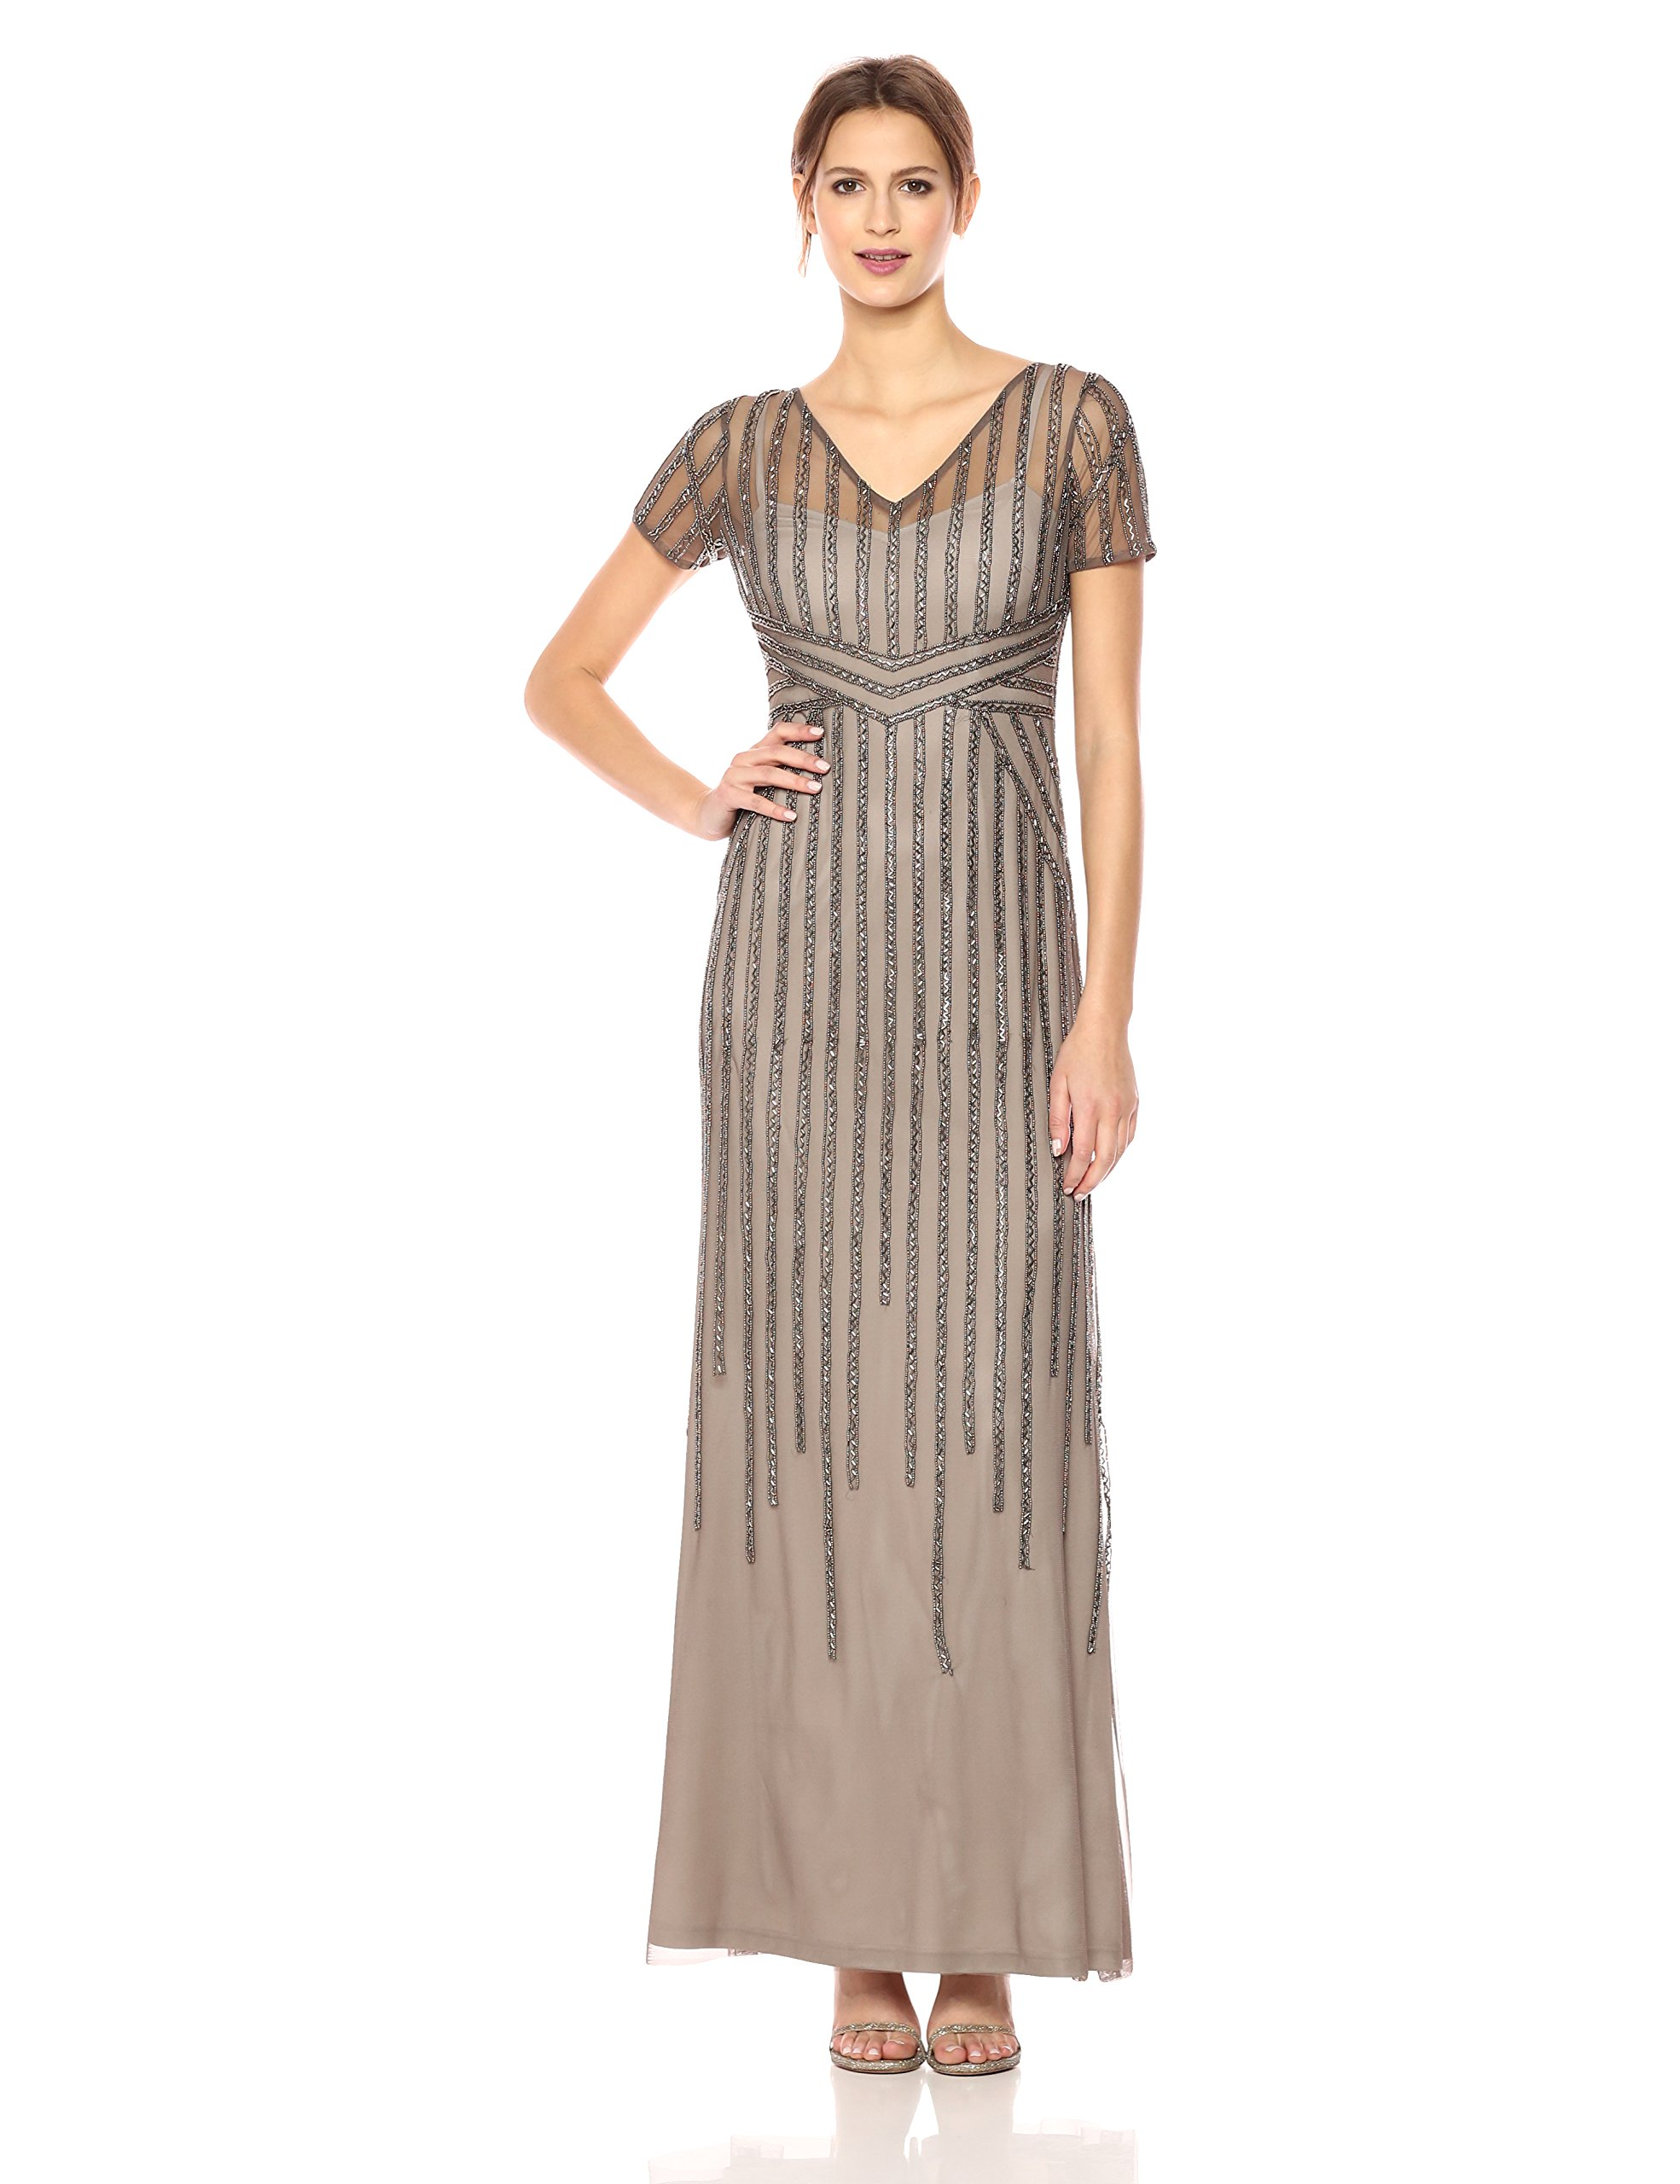 Adrianna Papell Women's Short Sleeve Linear Beaded Long Deco Gown, Lead, 14